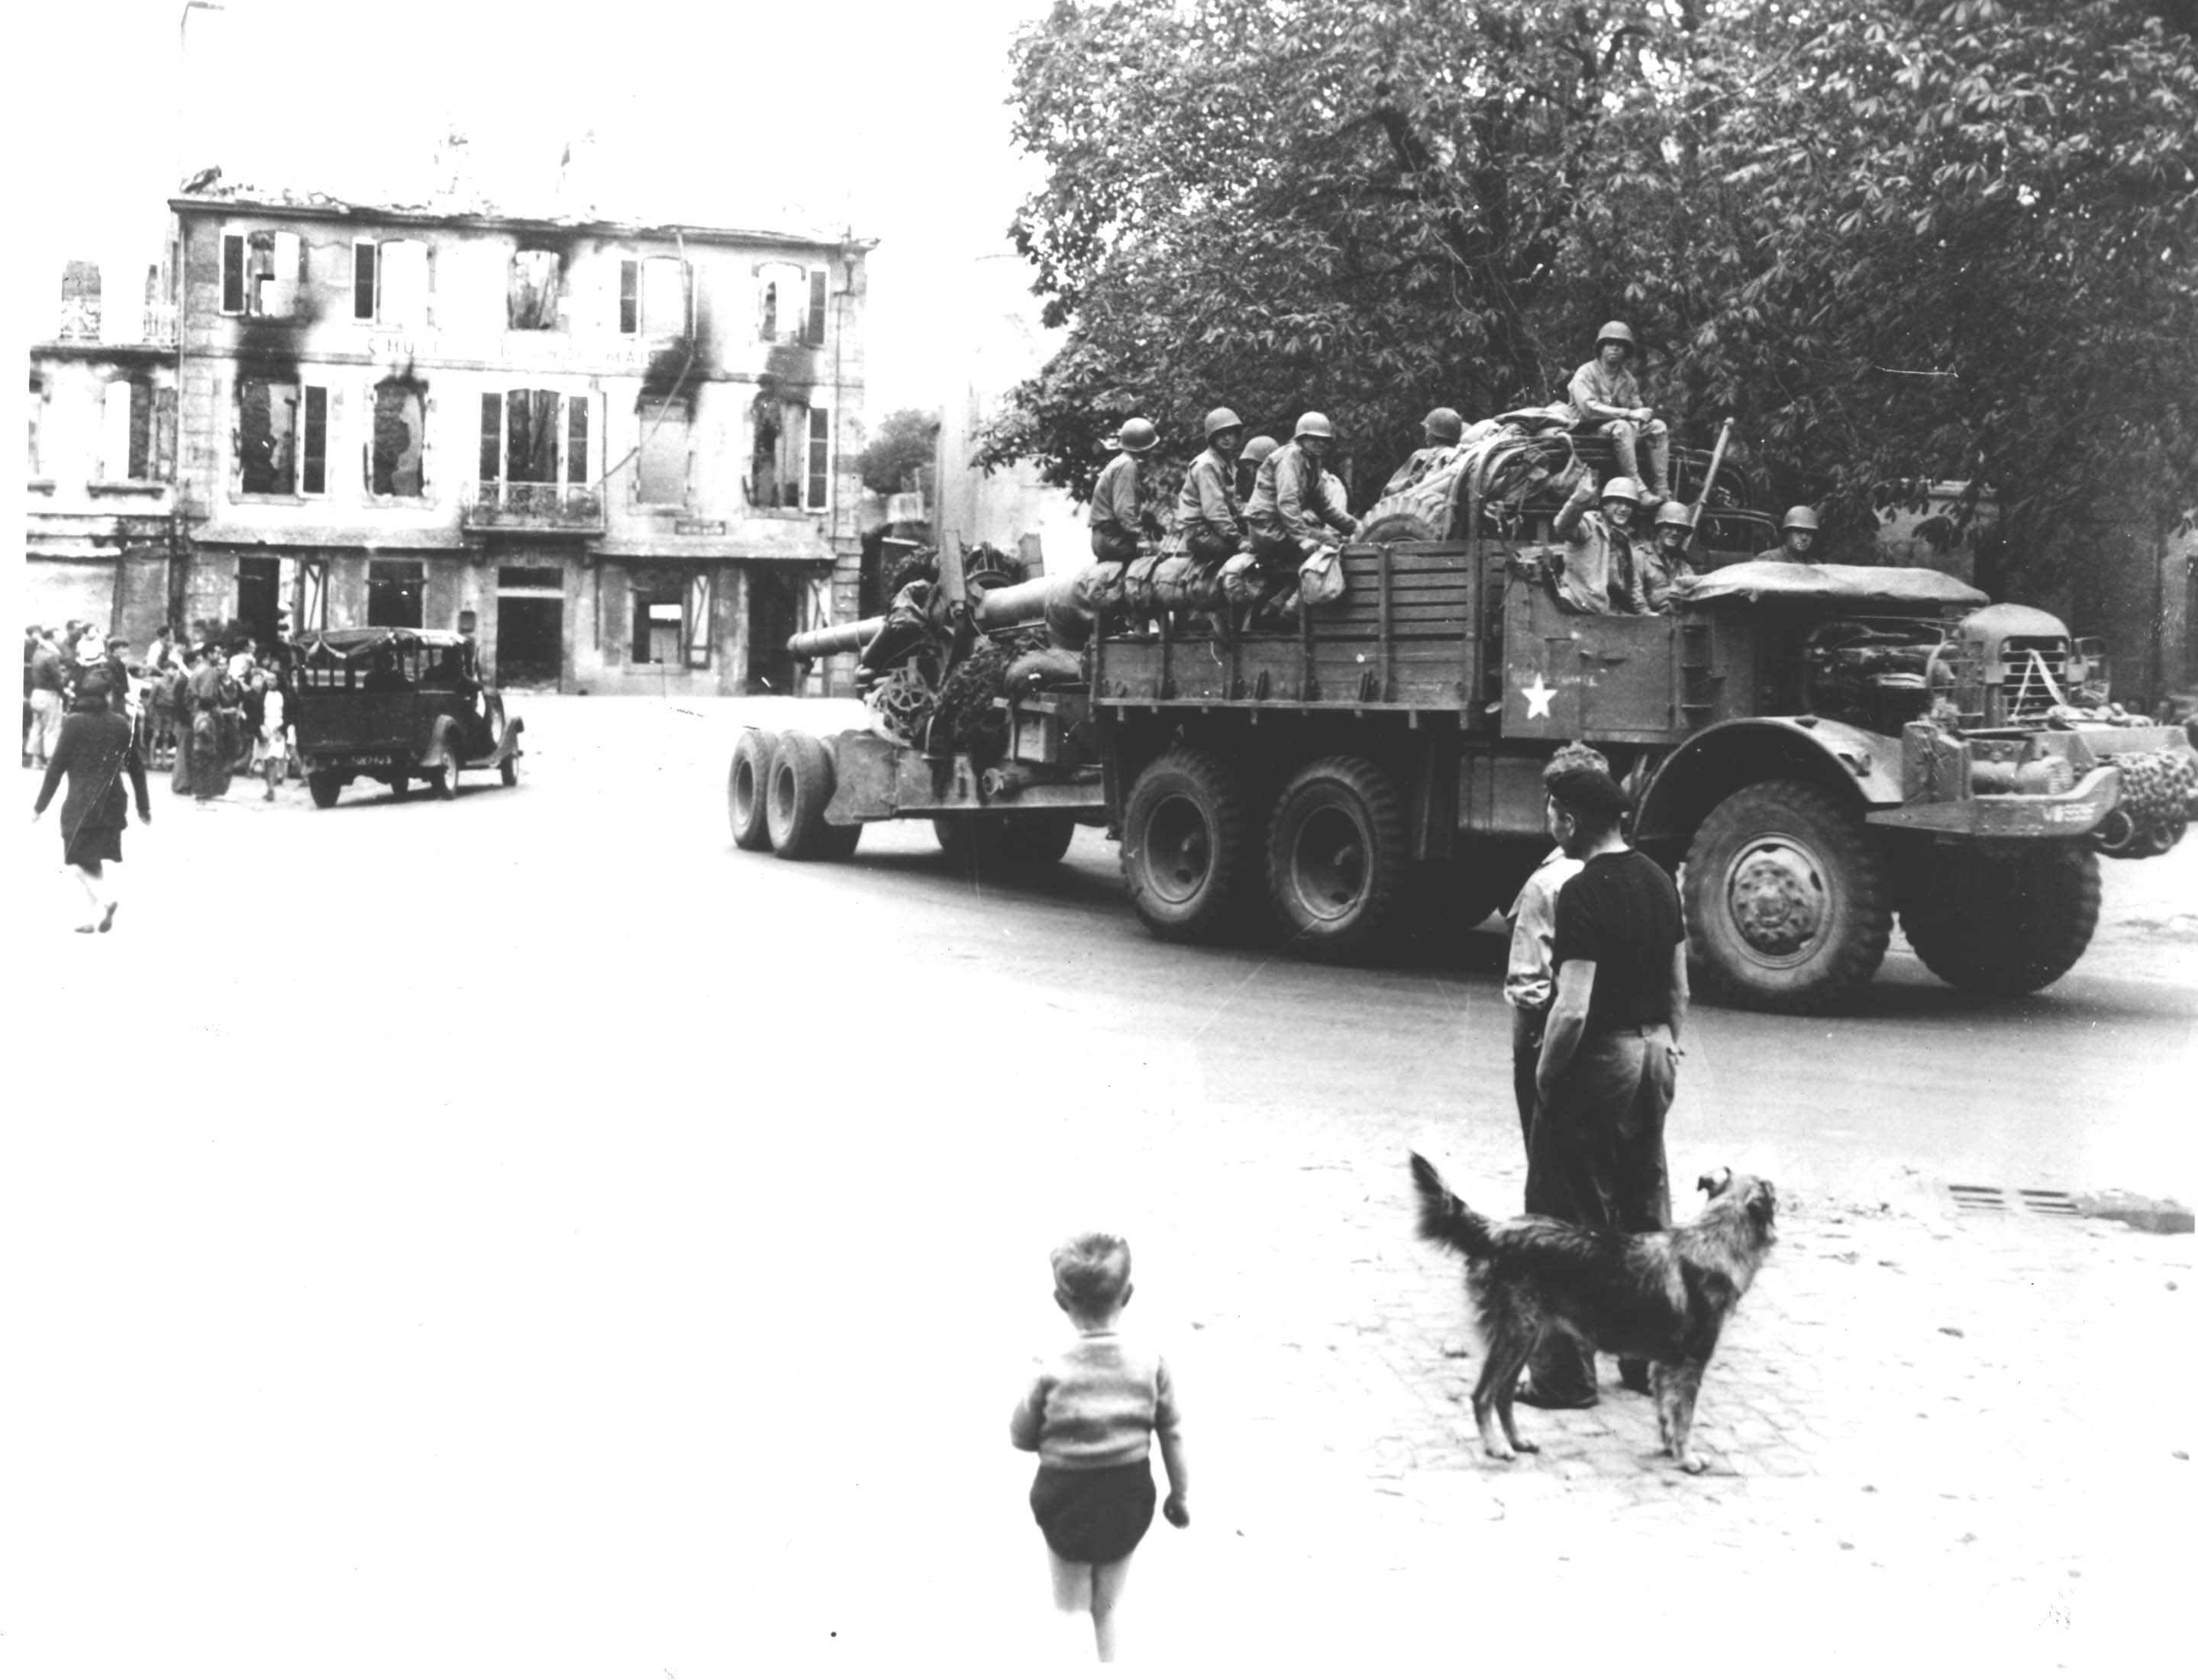 Image of truck with soldiers riding in the back making its way through